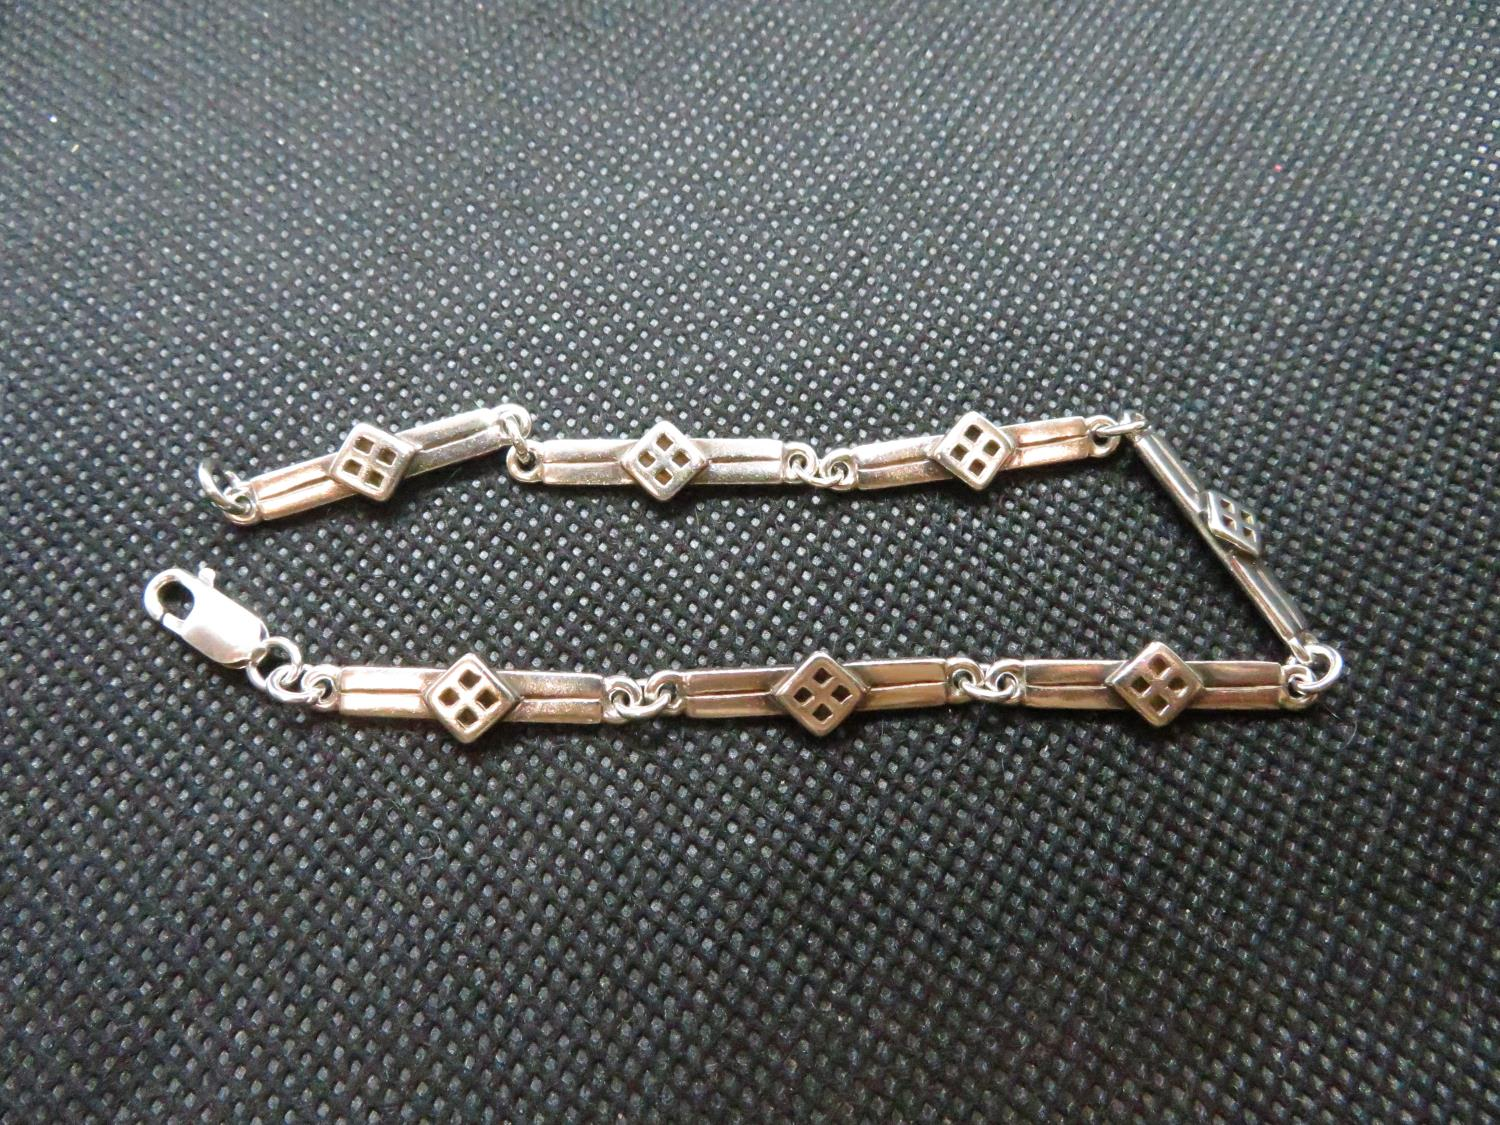 Lot 29 - Silver bracelet in style of Charles Rennie Mackintosh full HM 10grams